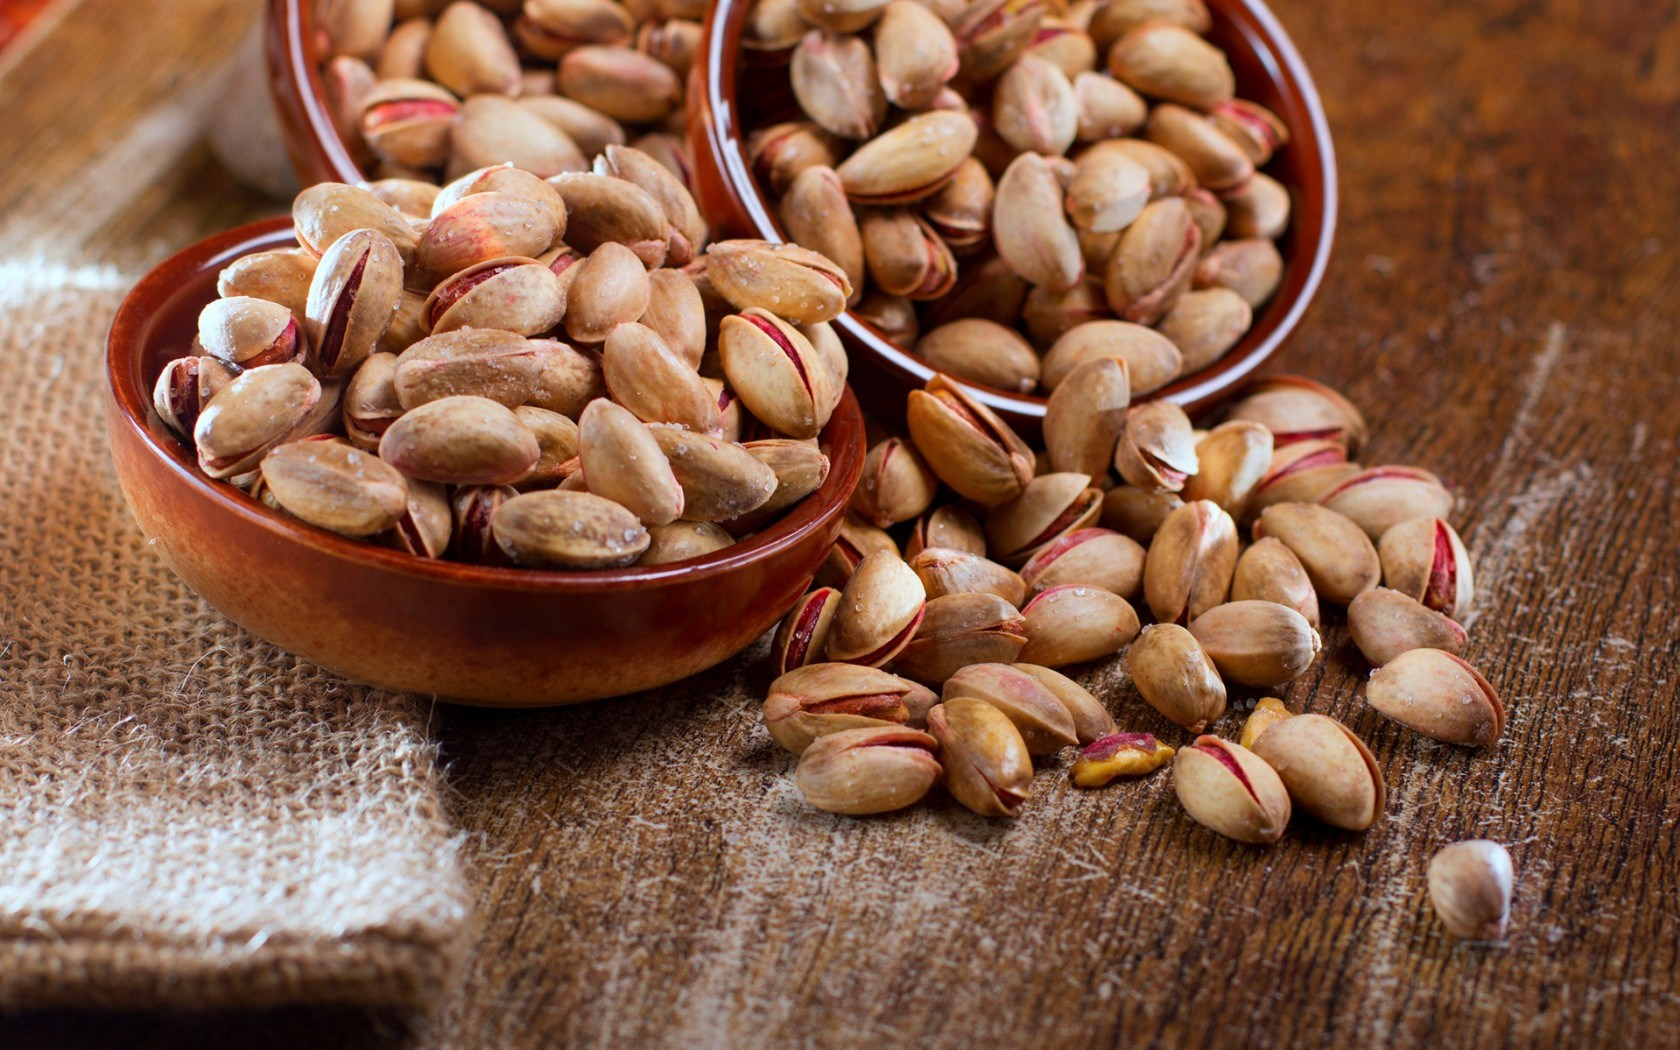 Dry Nuts Hd Free Image: 10 Fantastic HD Pistachio Wallpapers